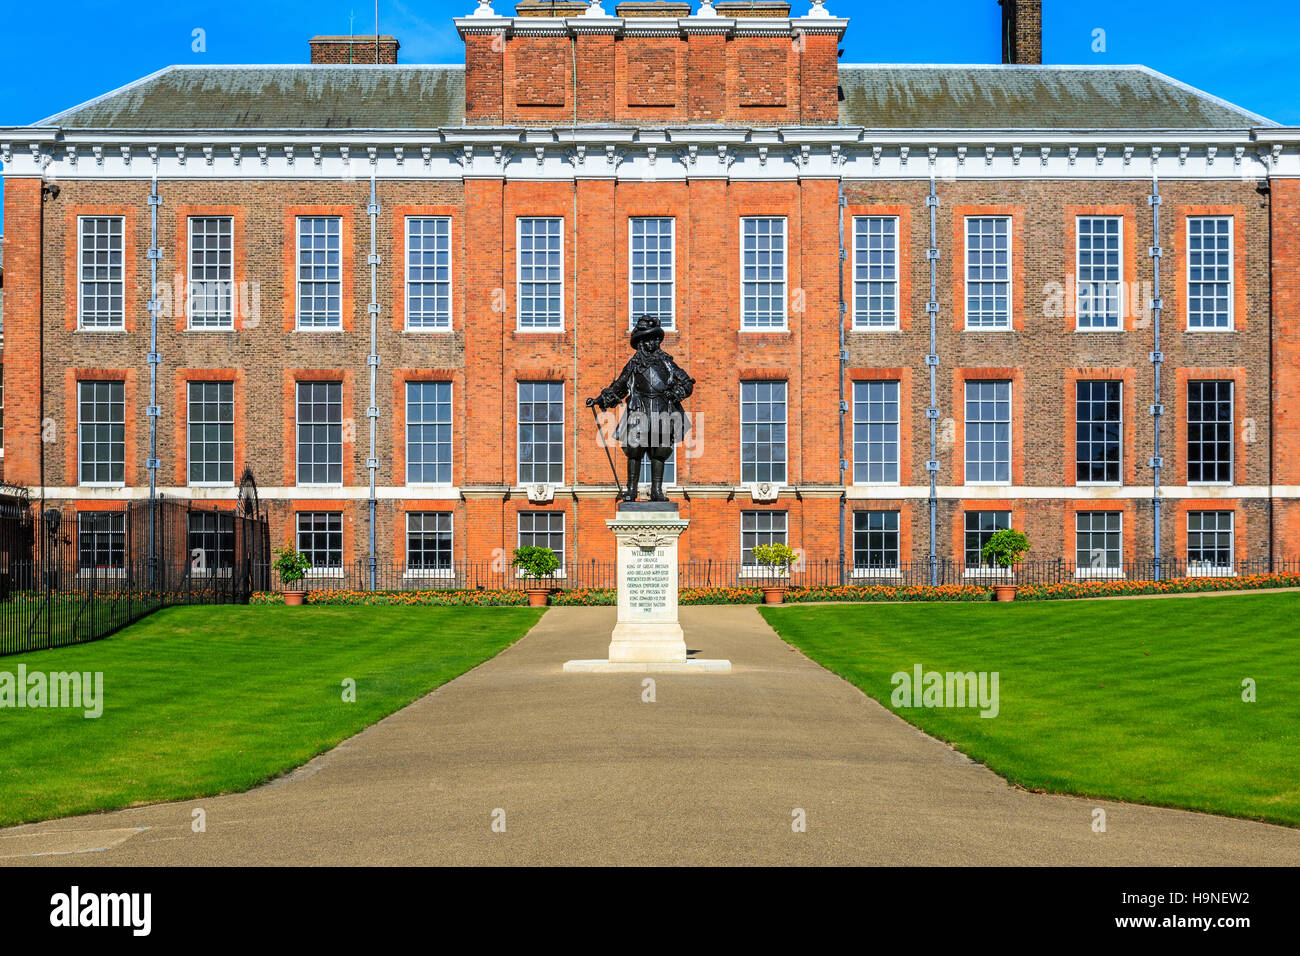 Kensington Palace in Hyde Park, London - Stock Image